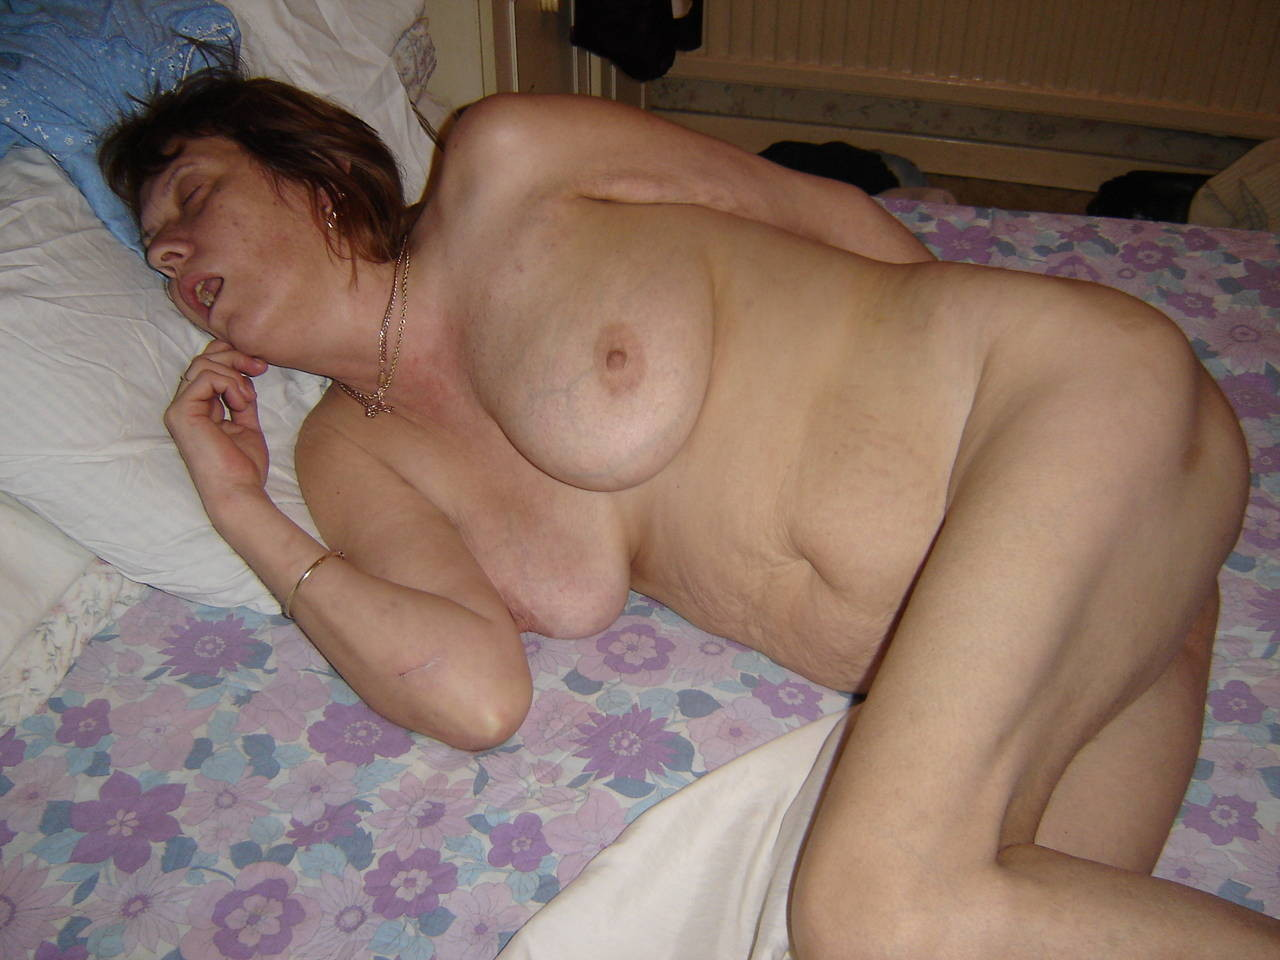 naked pics of sleeping mom